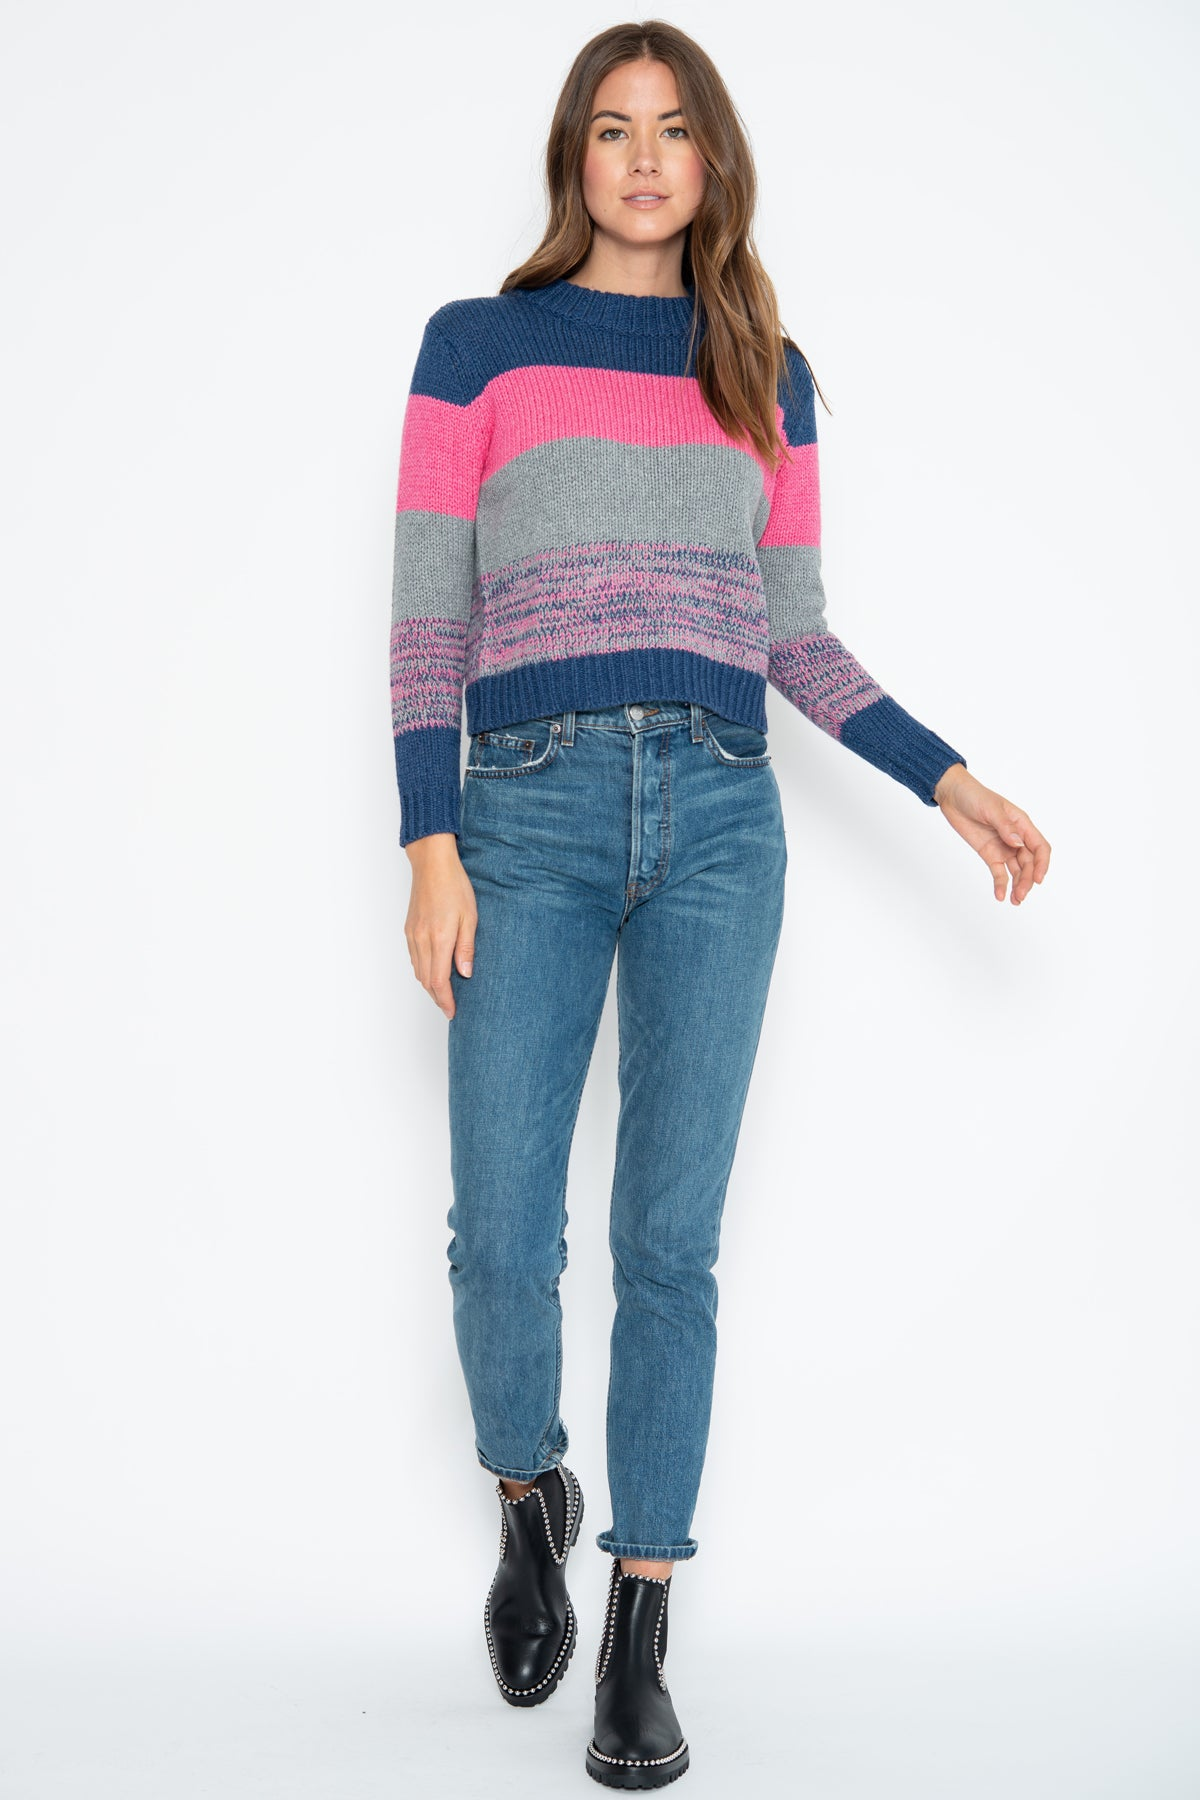 Gigi Pullover - Pink Shock/Denim Multi